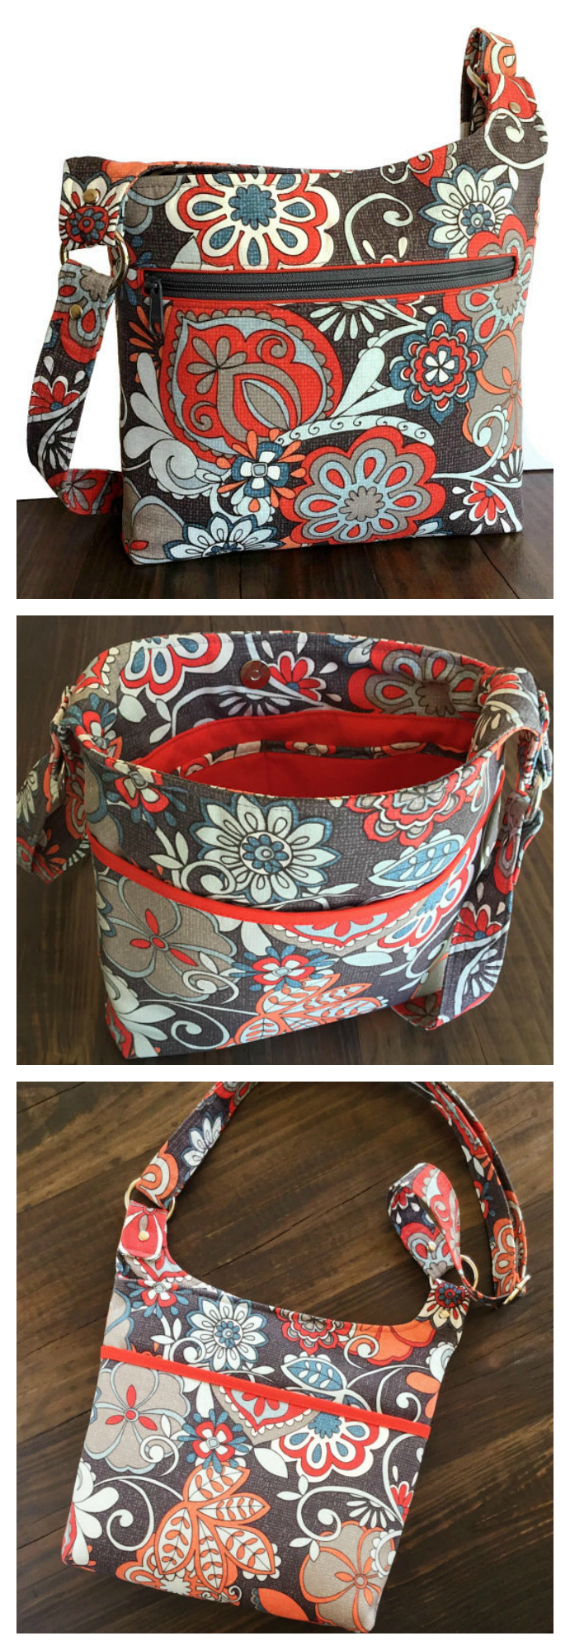 "This Hipster Purse is named The Vanessa Bag. With its slim, lightweight crossbody design this purse accommodates all of your essentials without weighing you down. The Vanessa Bag has many features, as follows: The strap adjusts for a perfect fit from a 25"" shoulder bag all the way to 50"" to be carried as a cross body bag. The large front zippered pocket is 9"" deep by 10"" wide. The back of the purse has a roomy slip pocket that measures 11.5"" wide by 7"" deep and fitted with a magnetic snap closure. It's fully lined with two interior slip pockets at 6"" by 6"" each. It has heavy interfacing for strength and support but very soft and comfortable to carry. A 1.25"" wide strap is comfortable to carry and extends all the way to 50"". A magnetic snap closure. Dimensions of 11.5"" wide by 10"" high by 2"" deep."